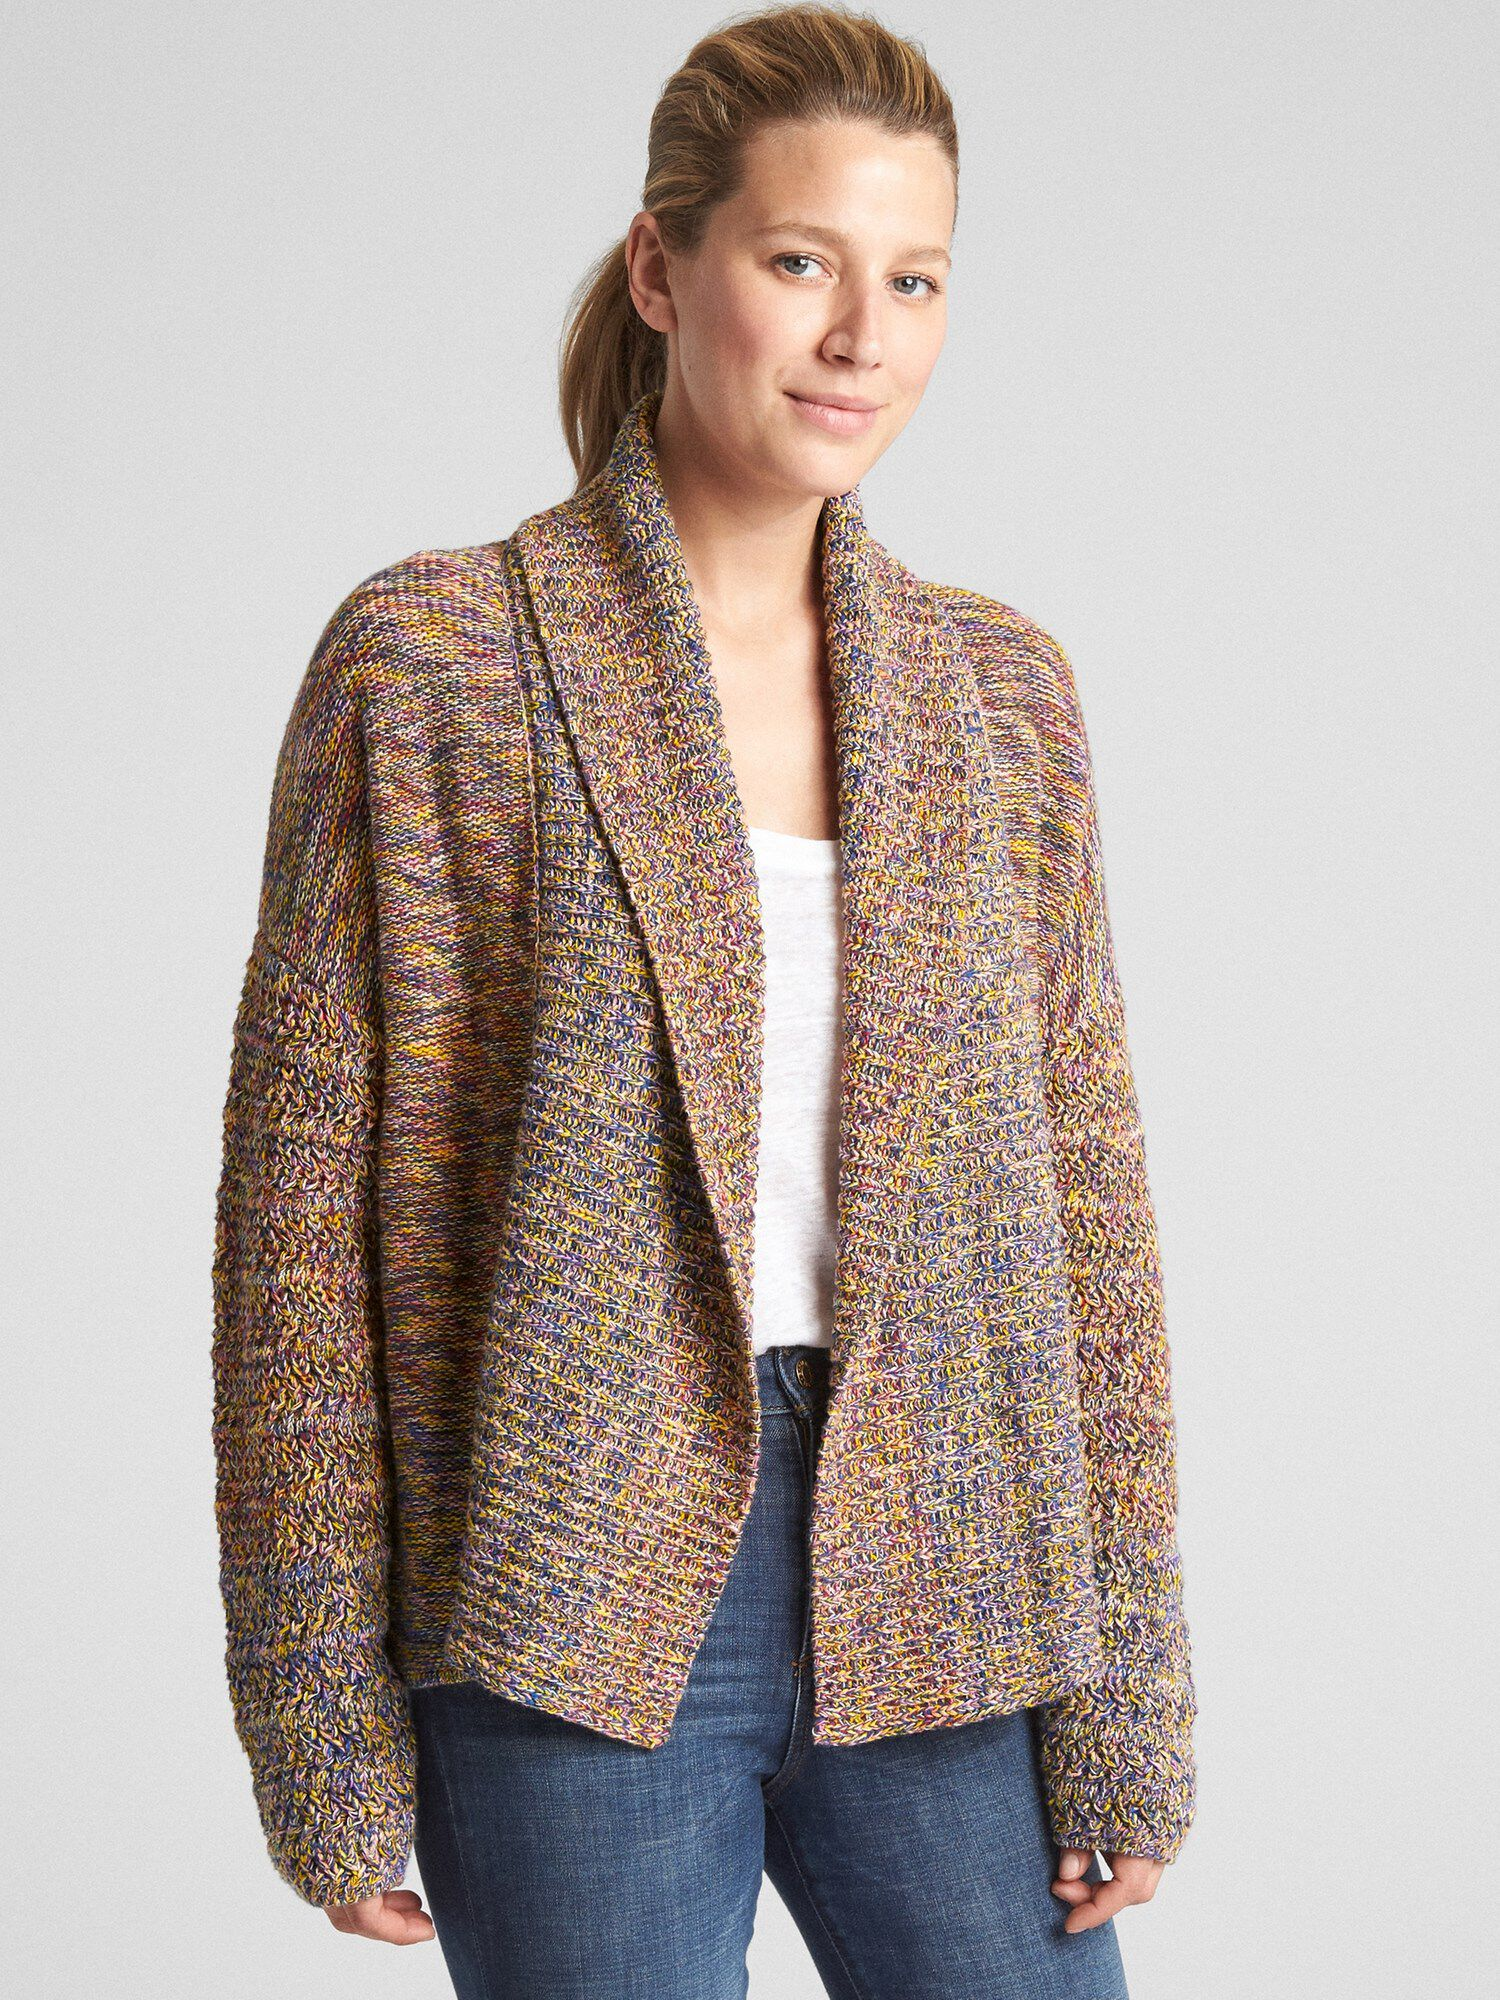 024a6e536 Open-Front Textured Shawl Collar Cardigan Sweater